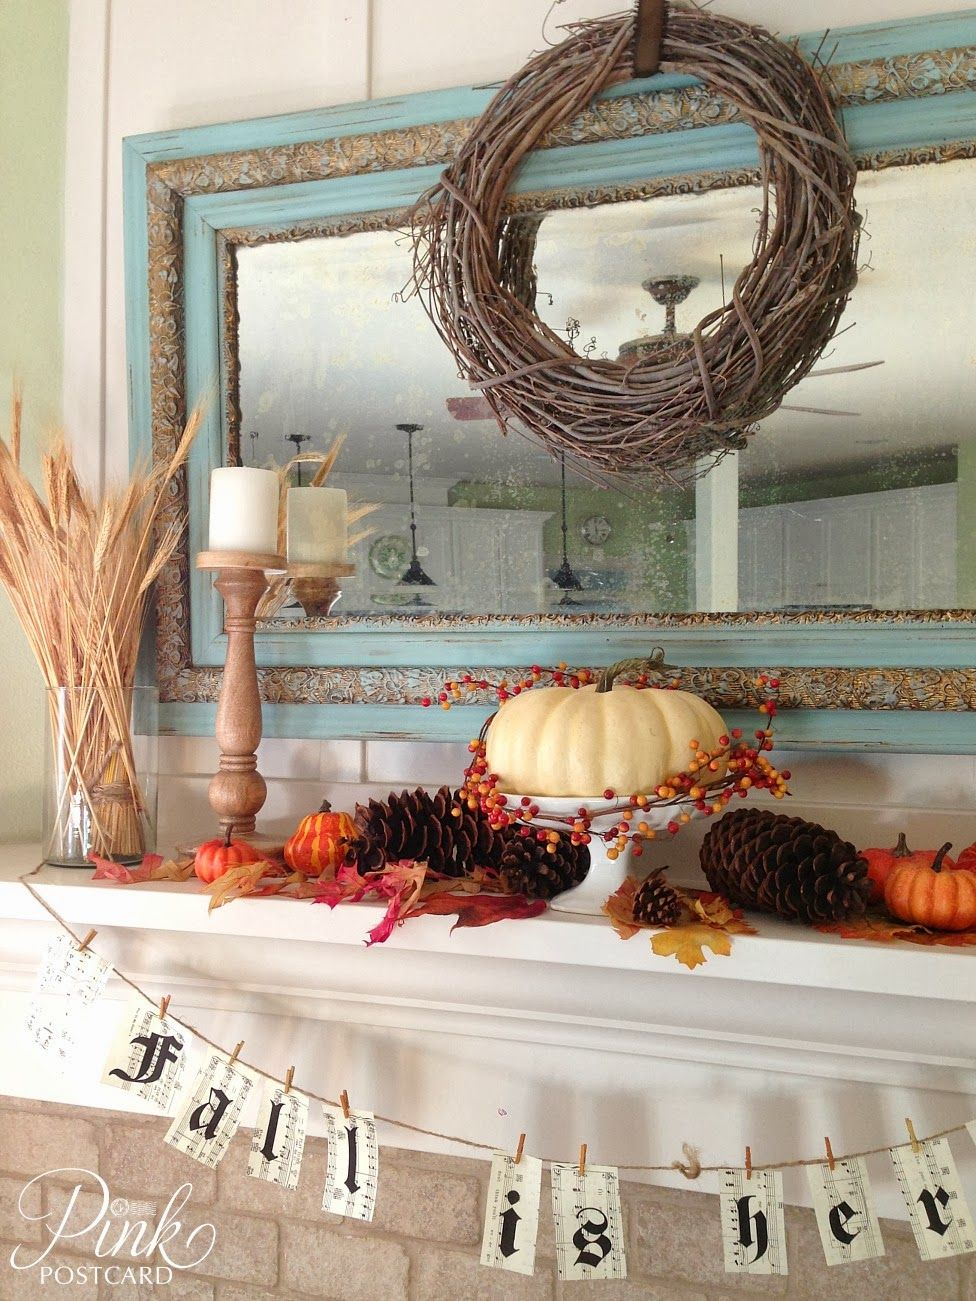 Get inspired to switch out your mantel decor for the Fall season with this collection of amazing Fall mantel decorating ideas. & Pink Postcard*: simple fall mantel- fall decor | fireplace ...